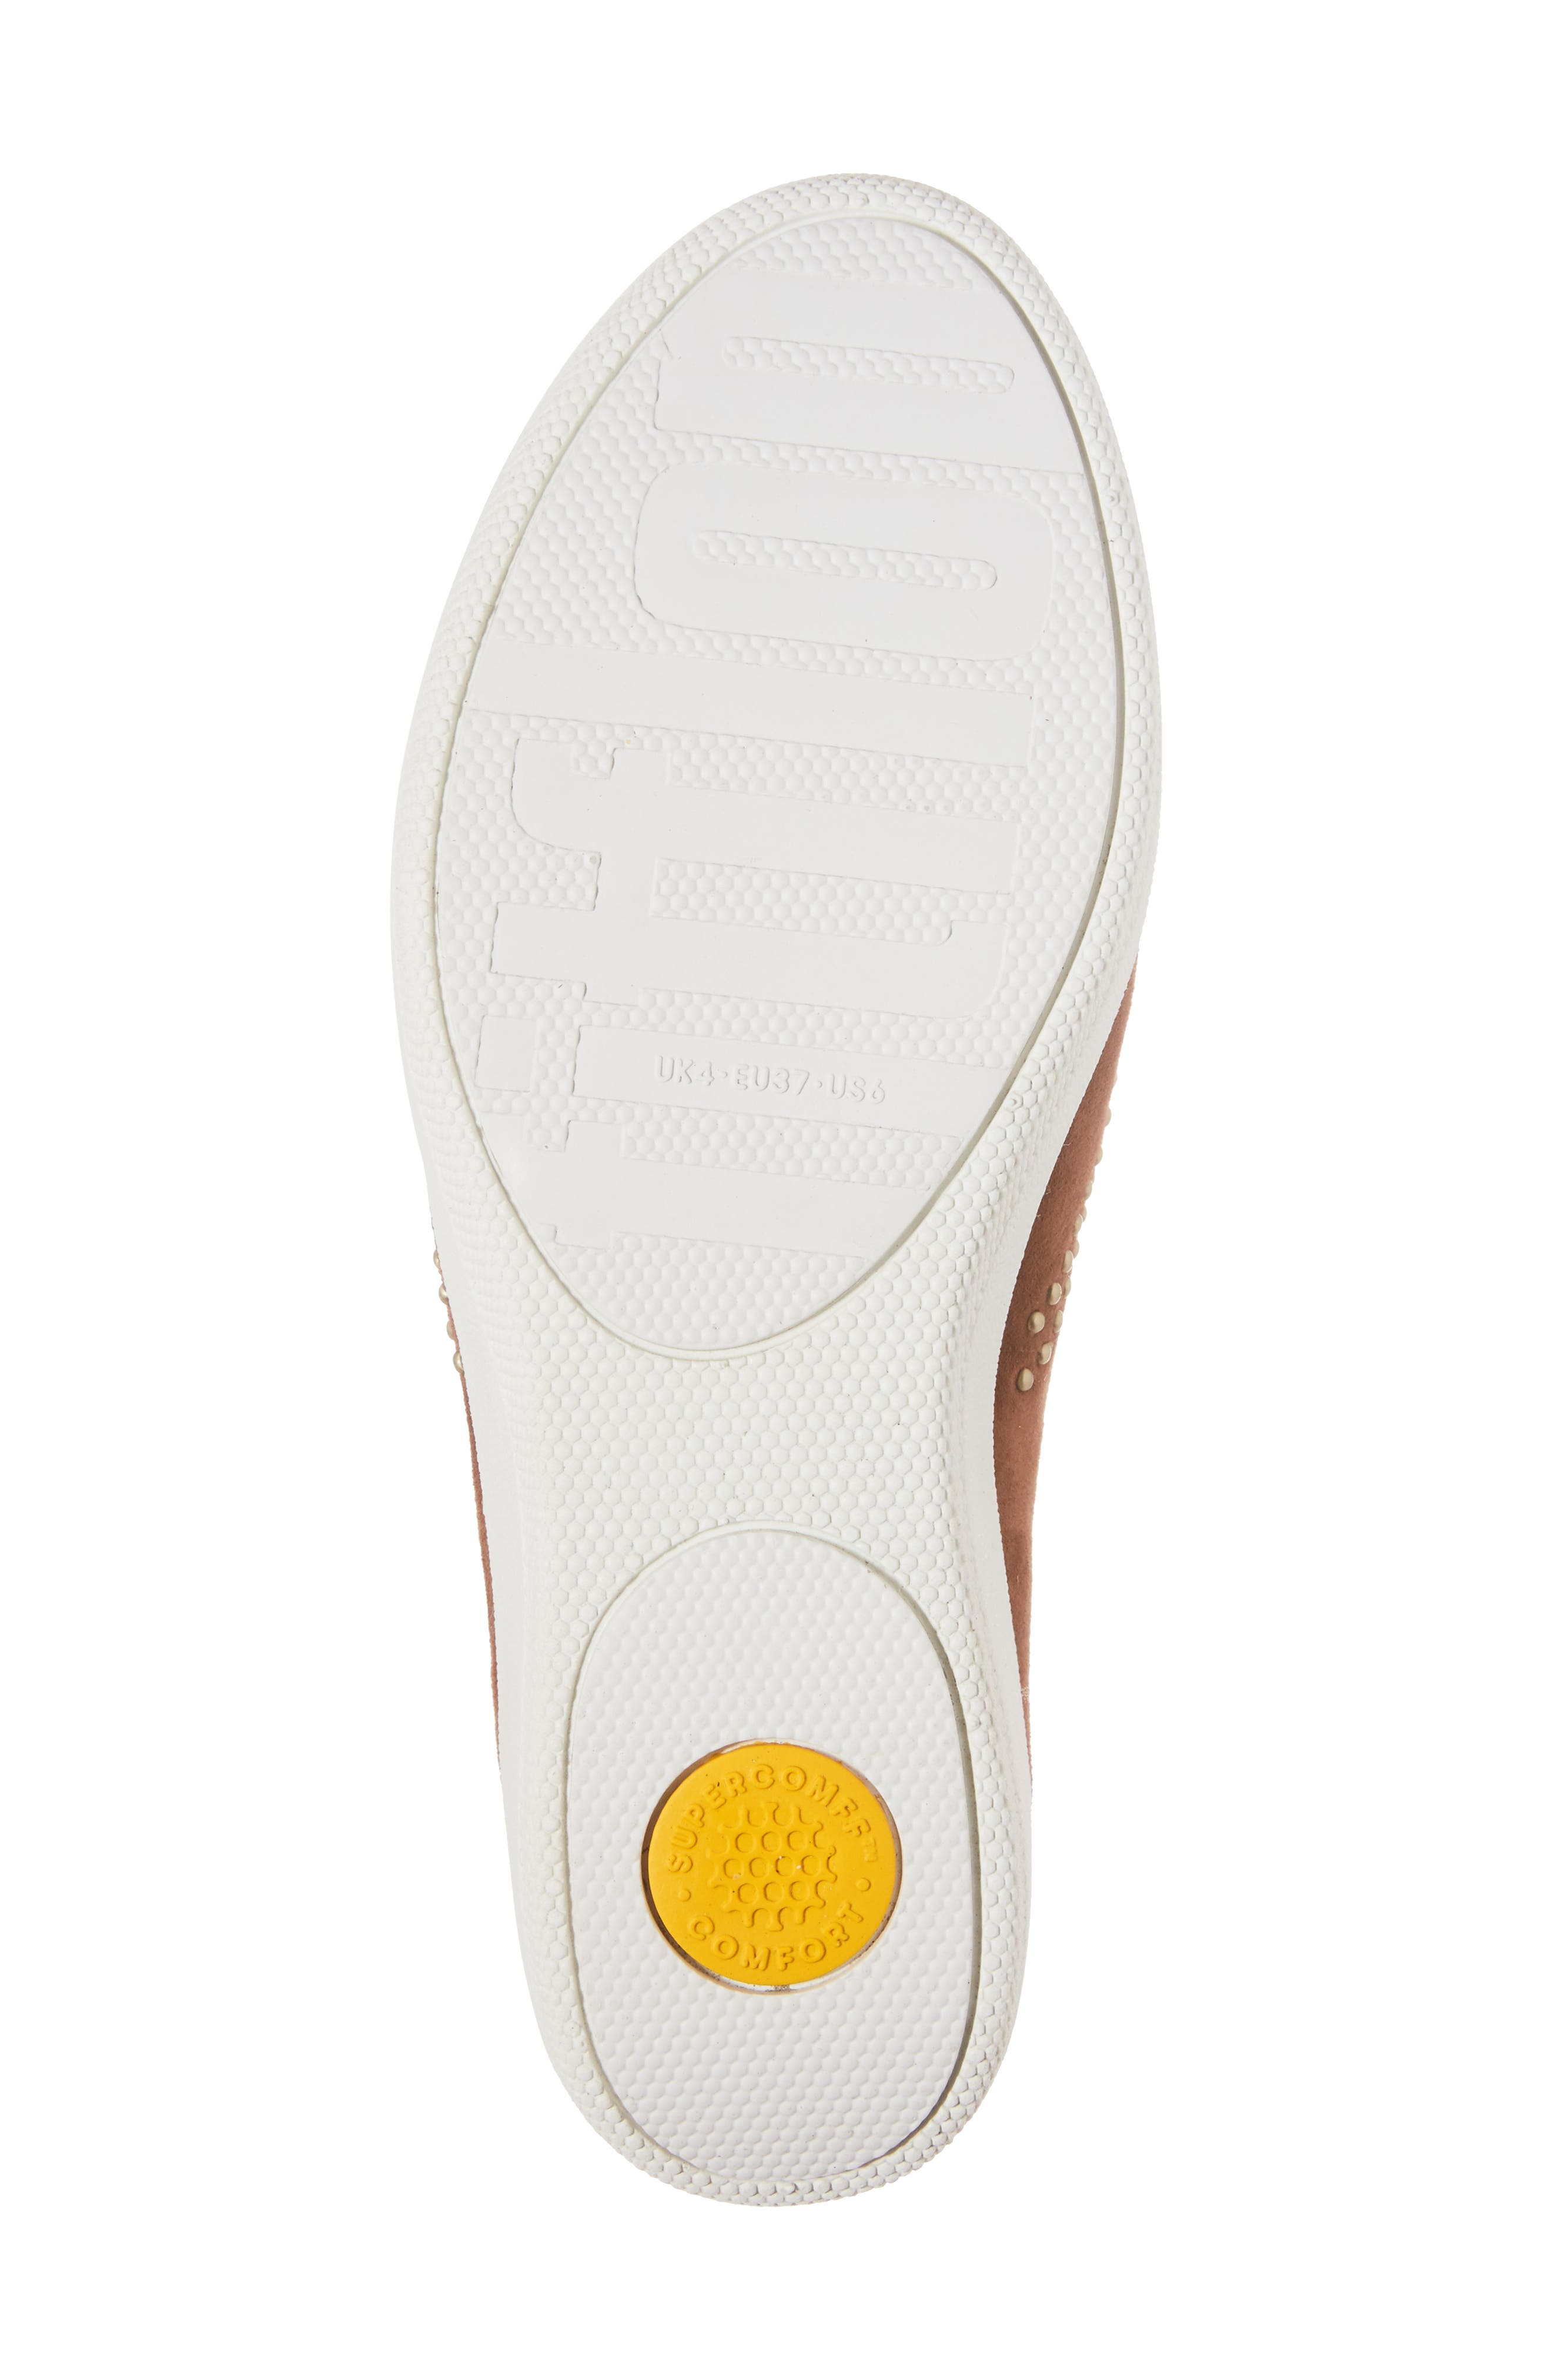 Superskate Studded Wedge Loafer,                             Alternate thumbnail 6, color,                             Tan Faux Suede